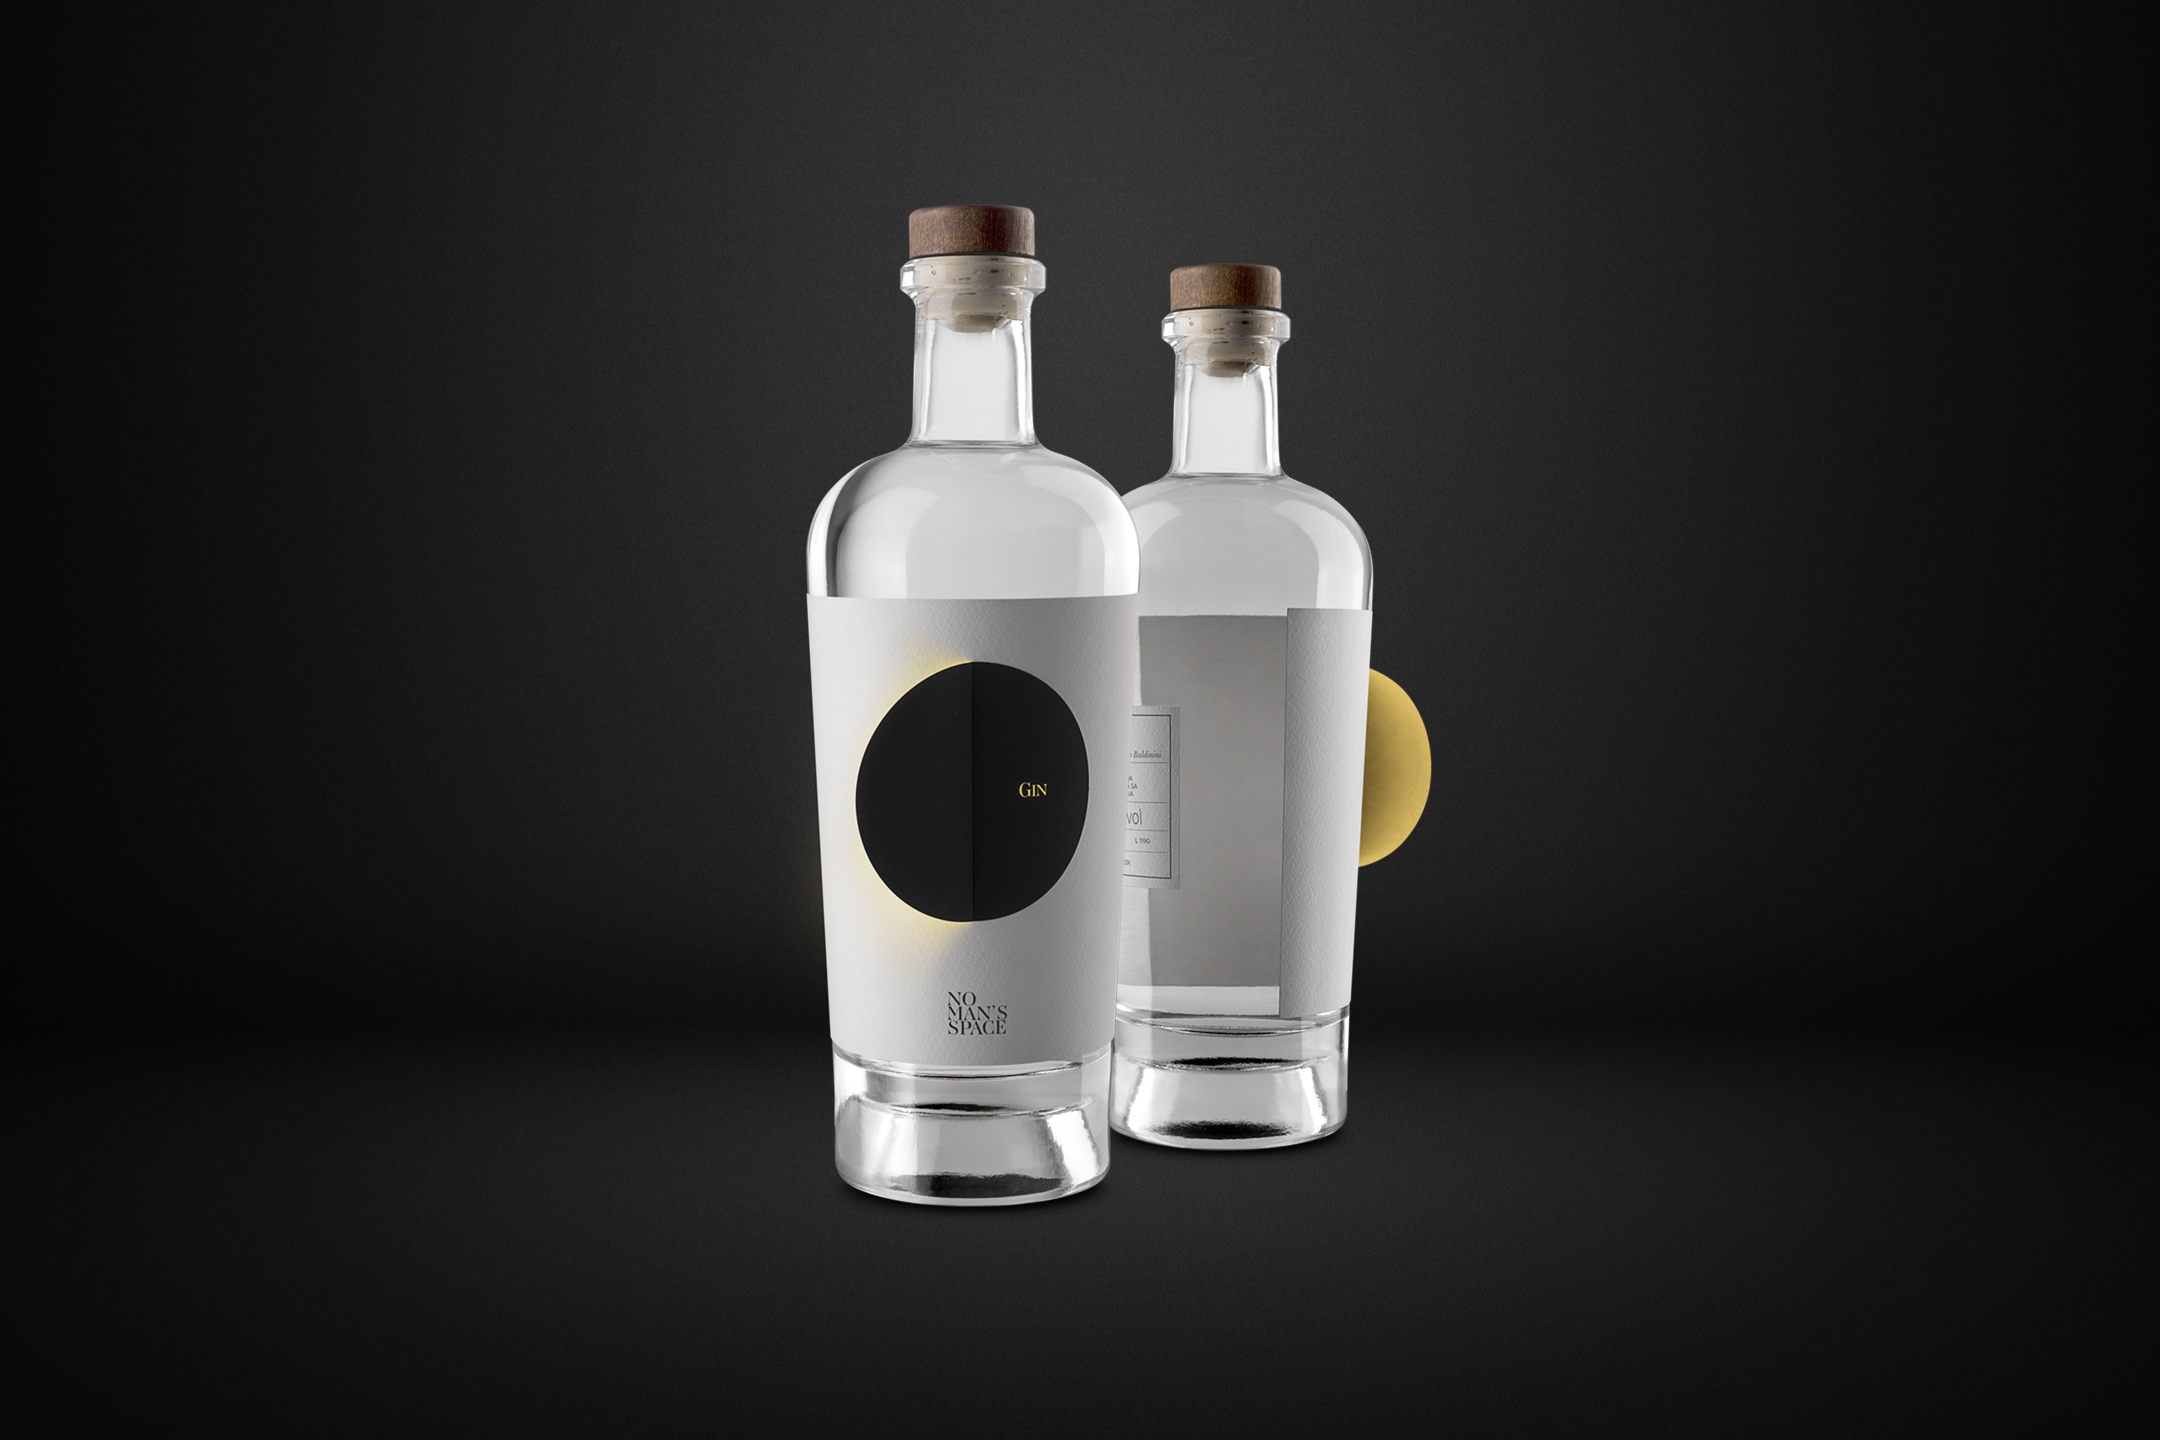 spazio-di-paolo-packaging-spirit-label-award-design-gin-brand-breeder-no-mans-space-15